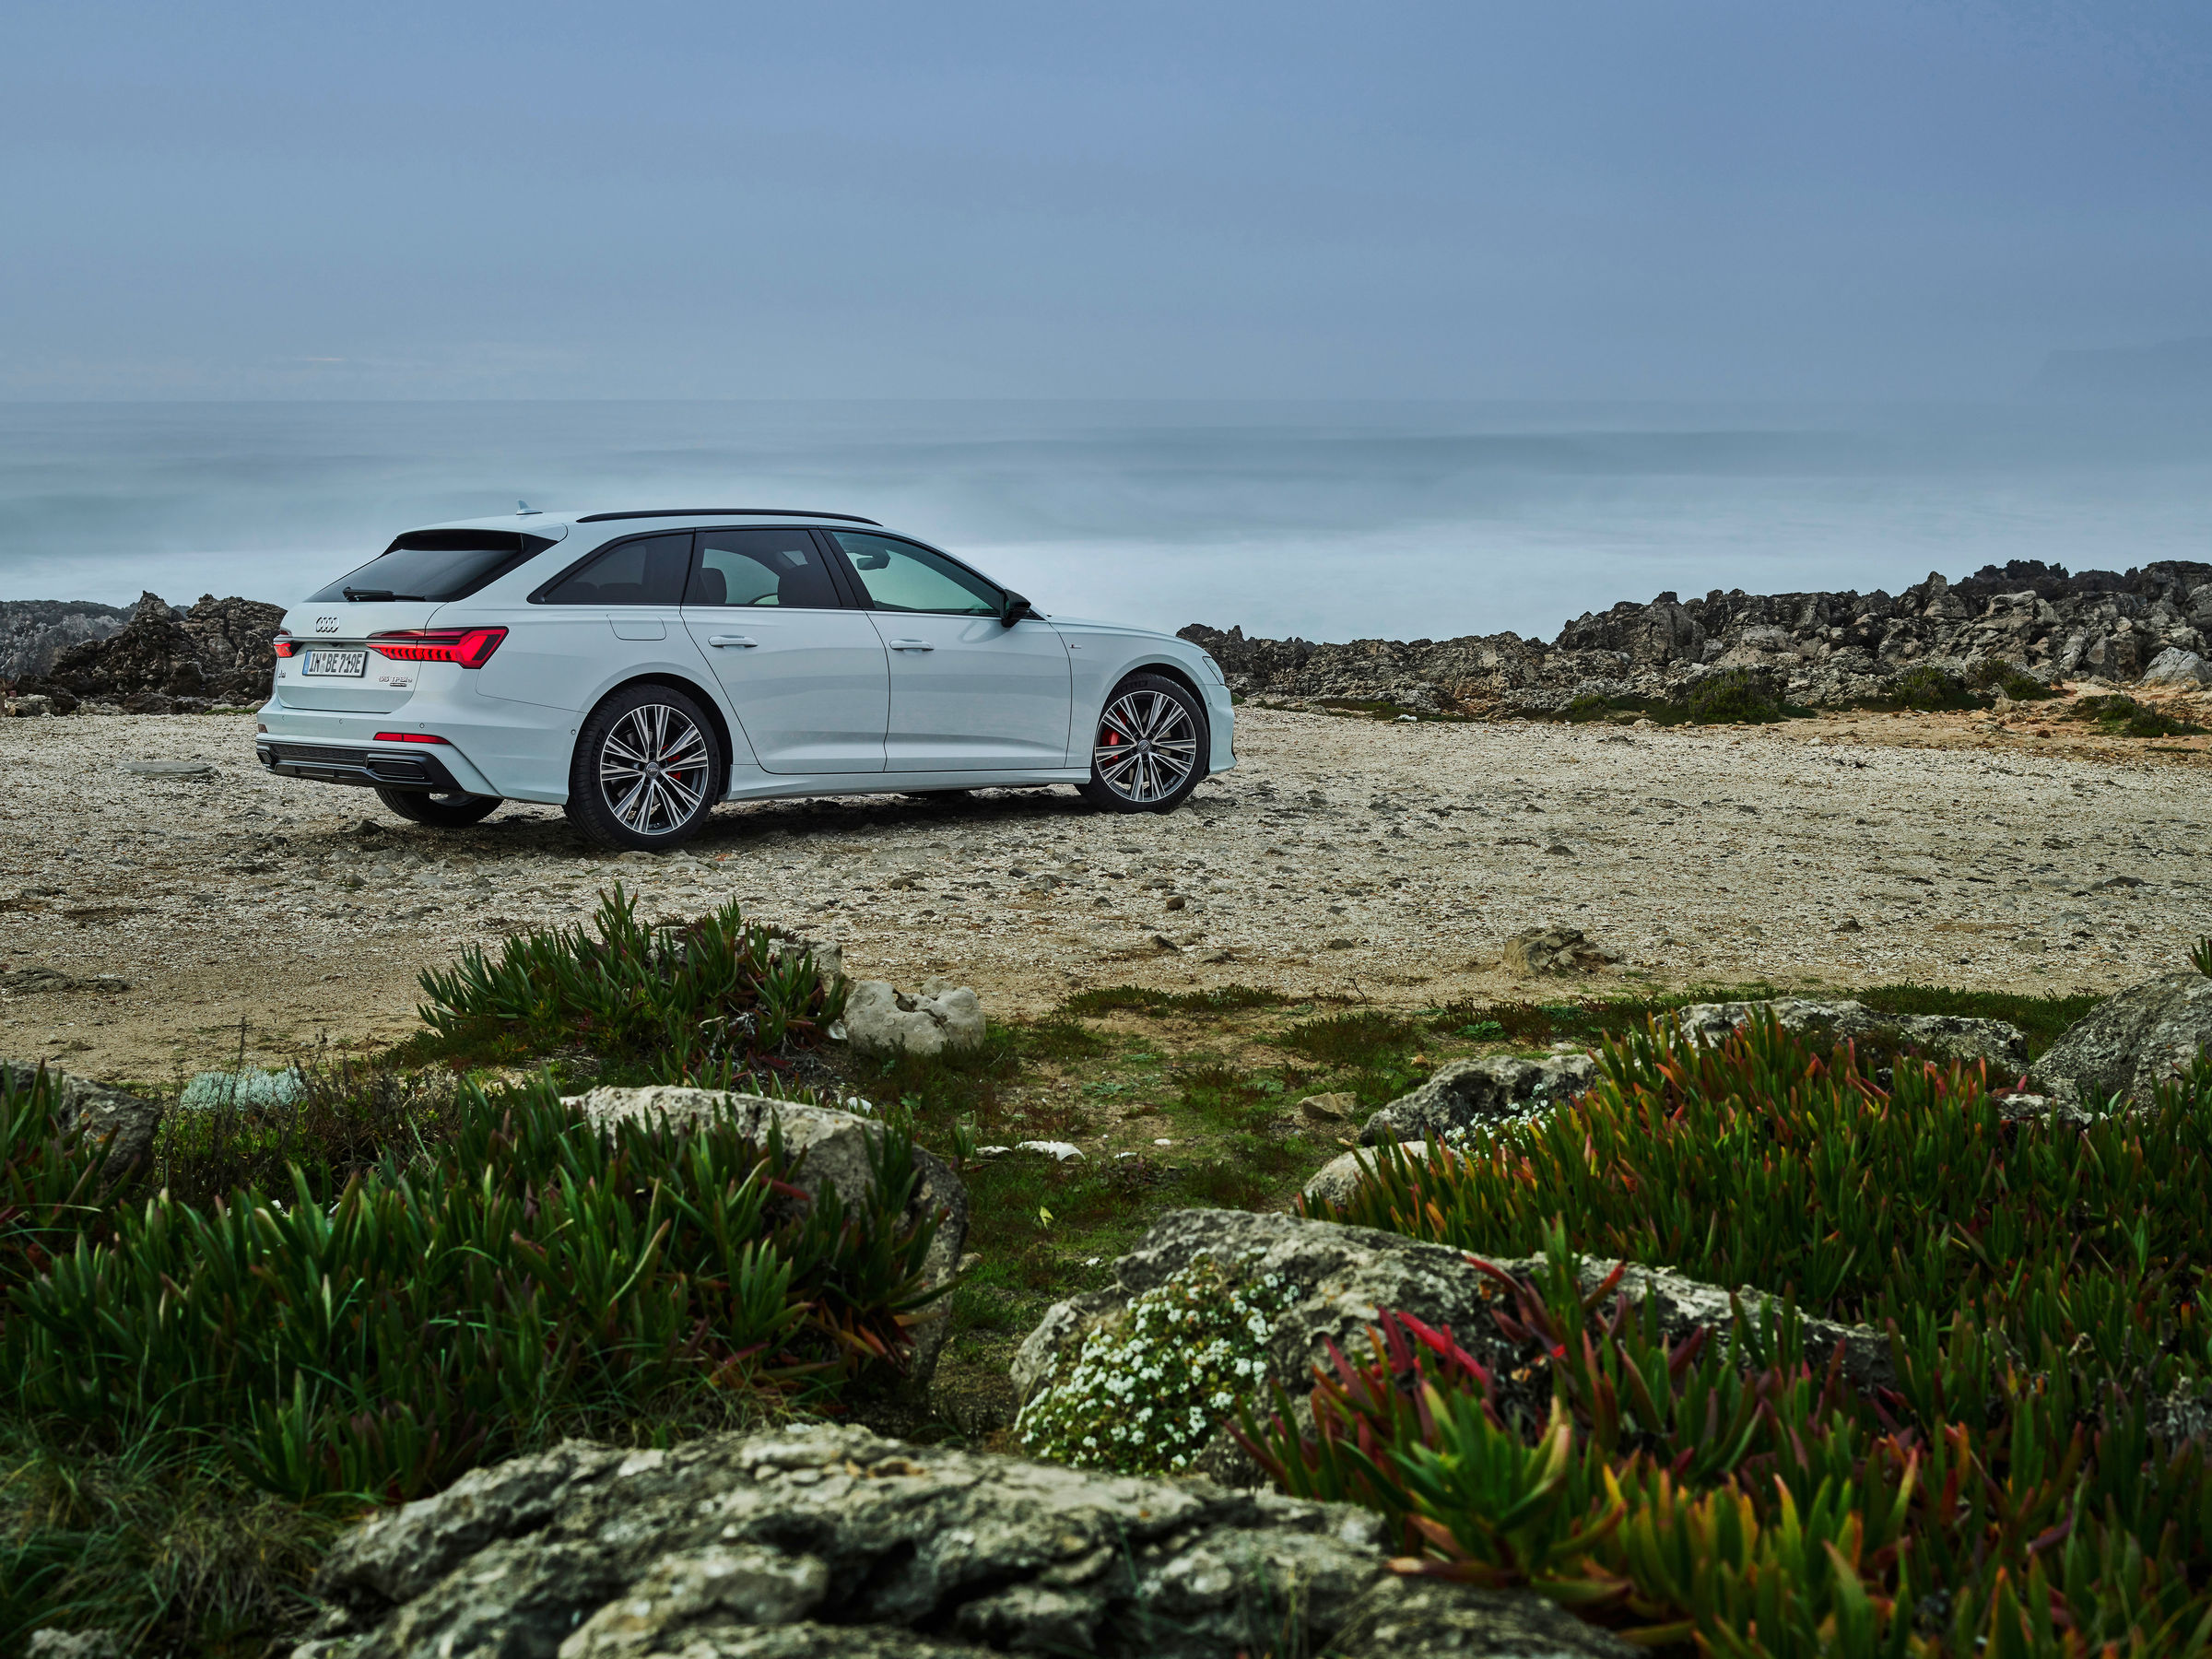 Audi full-size station wagon now as a plug-in hybrid: the new A6 Avant TFSI e quattro - Image 6